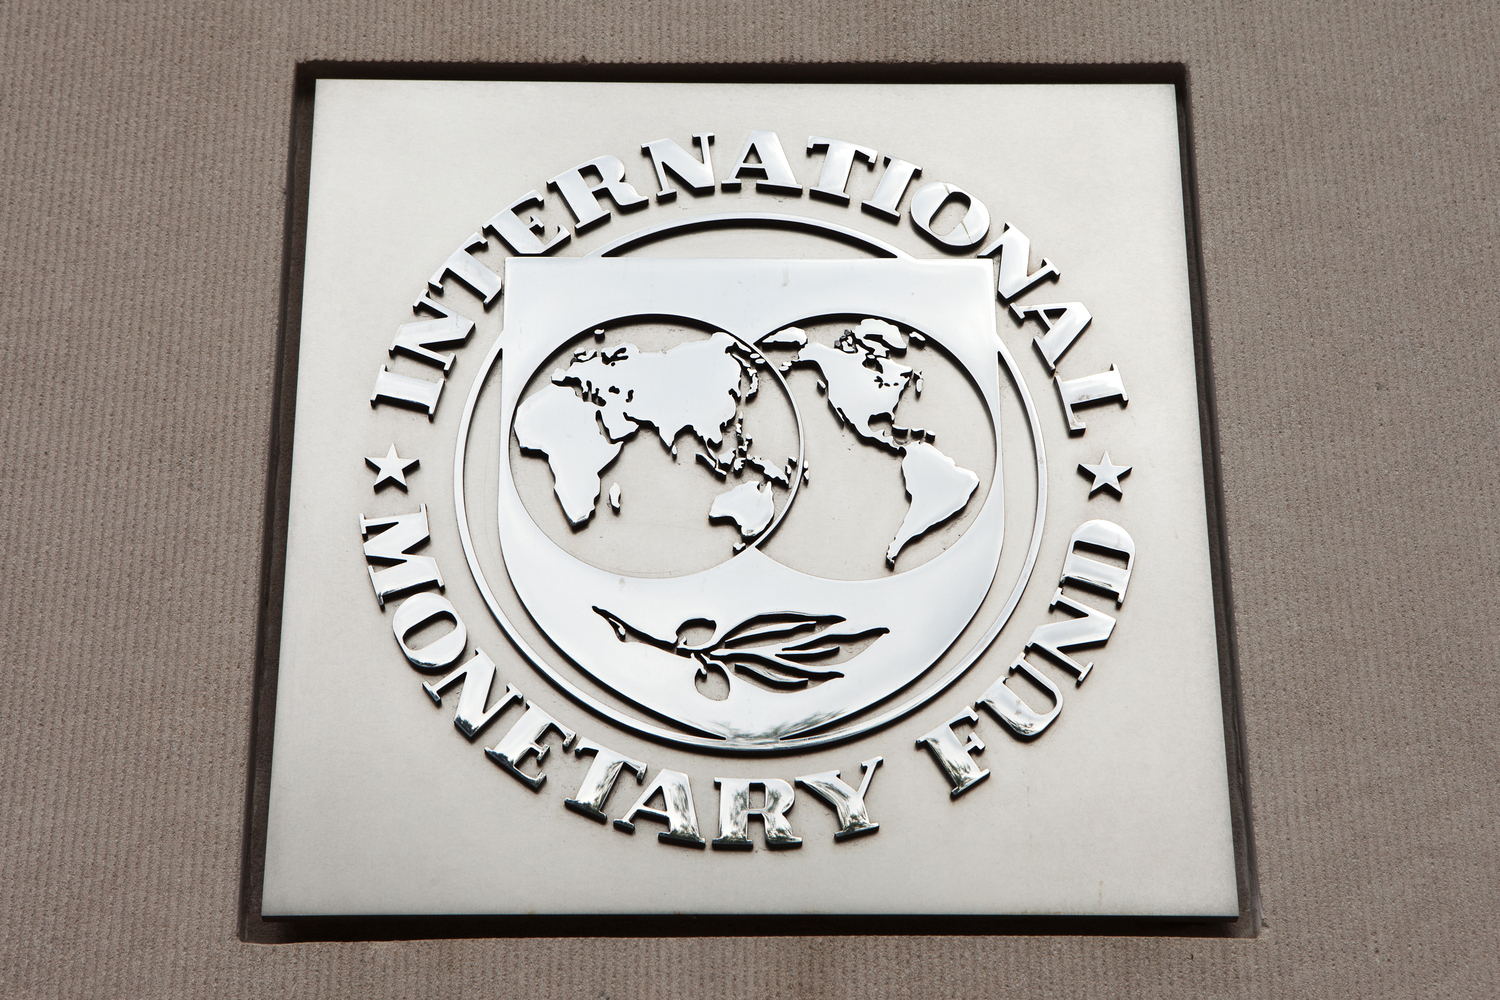 does the imf have its own cryptocurrency